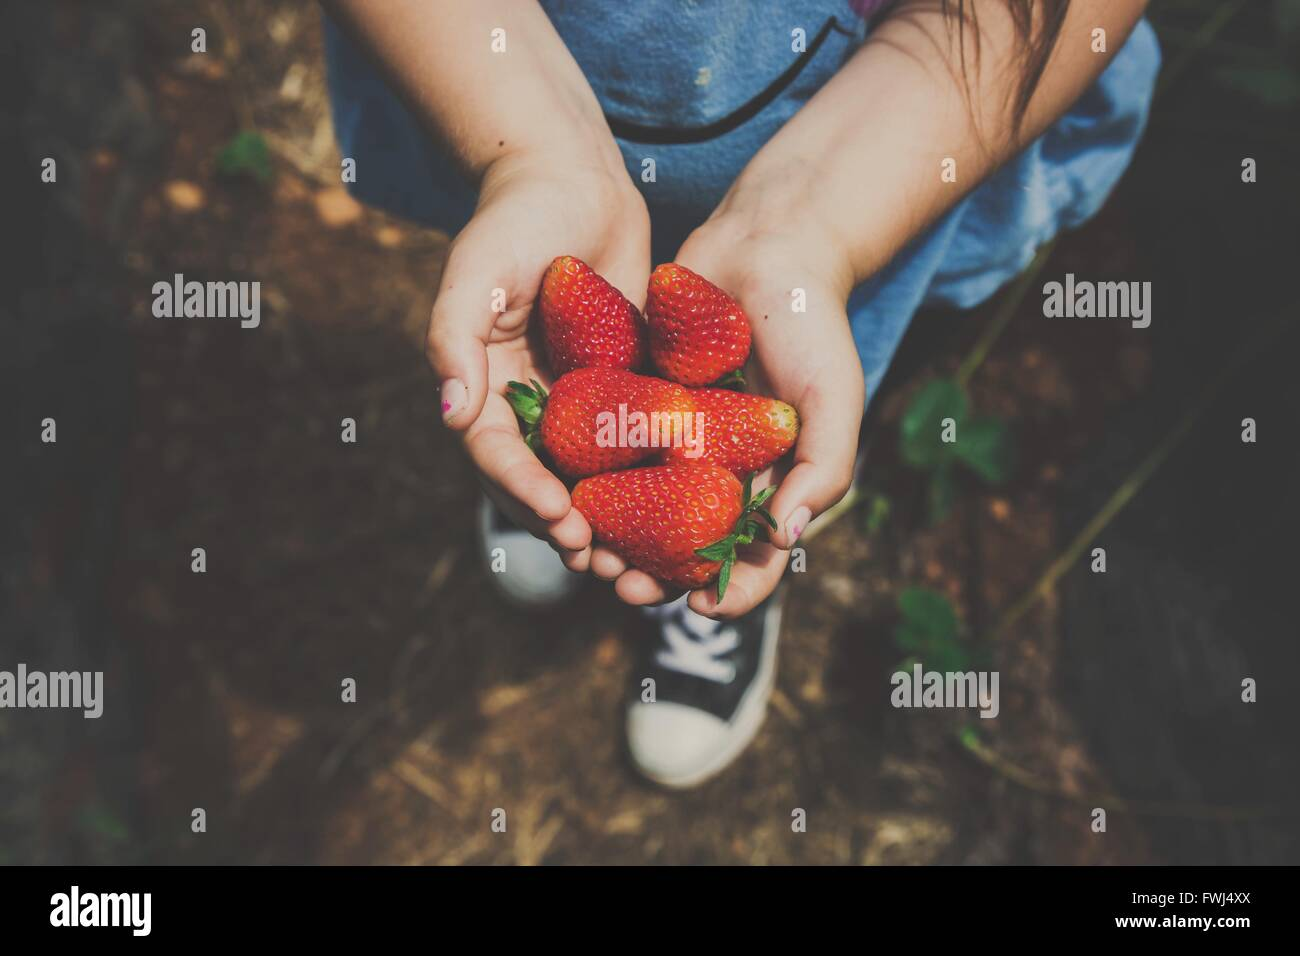 Girl Holding Strawberries - Stock Image